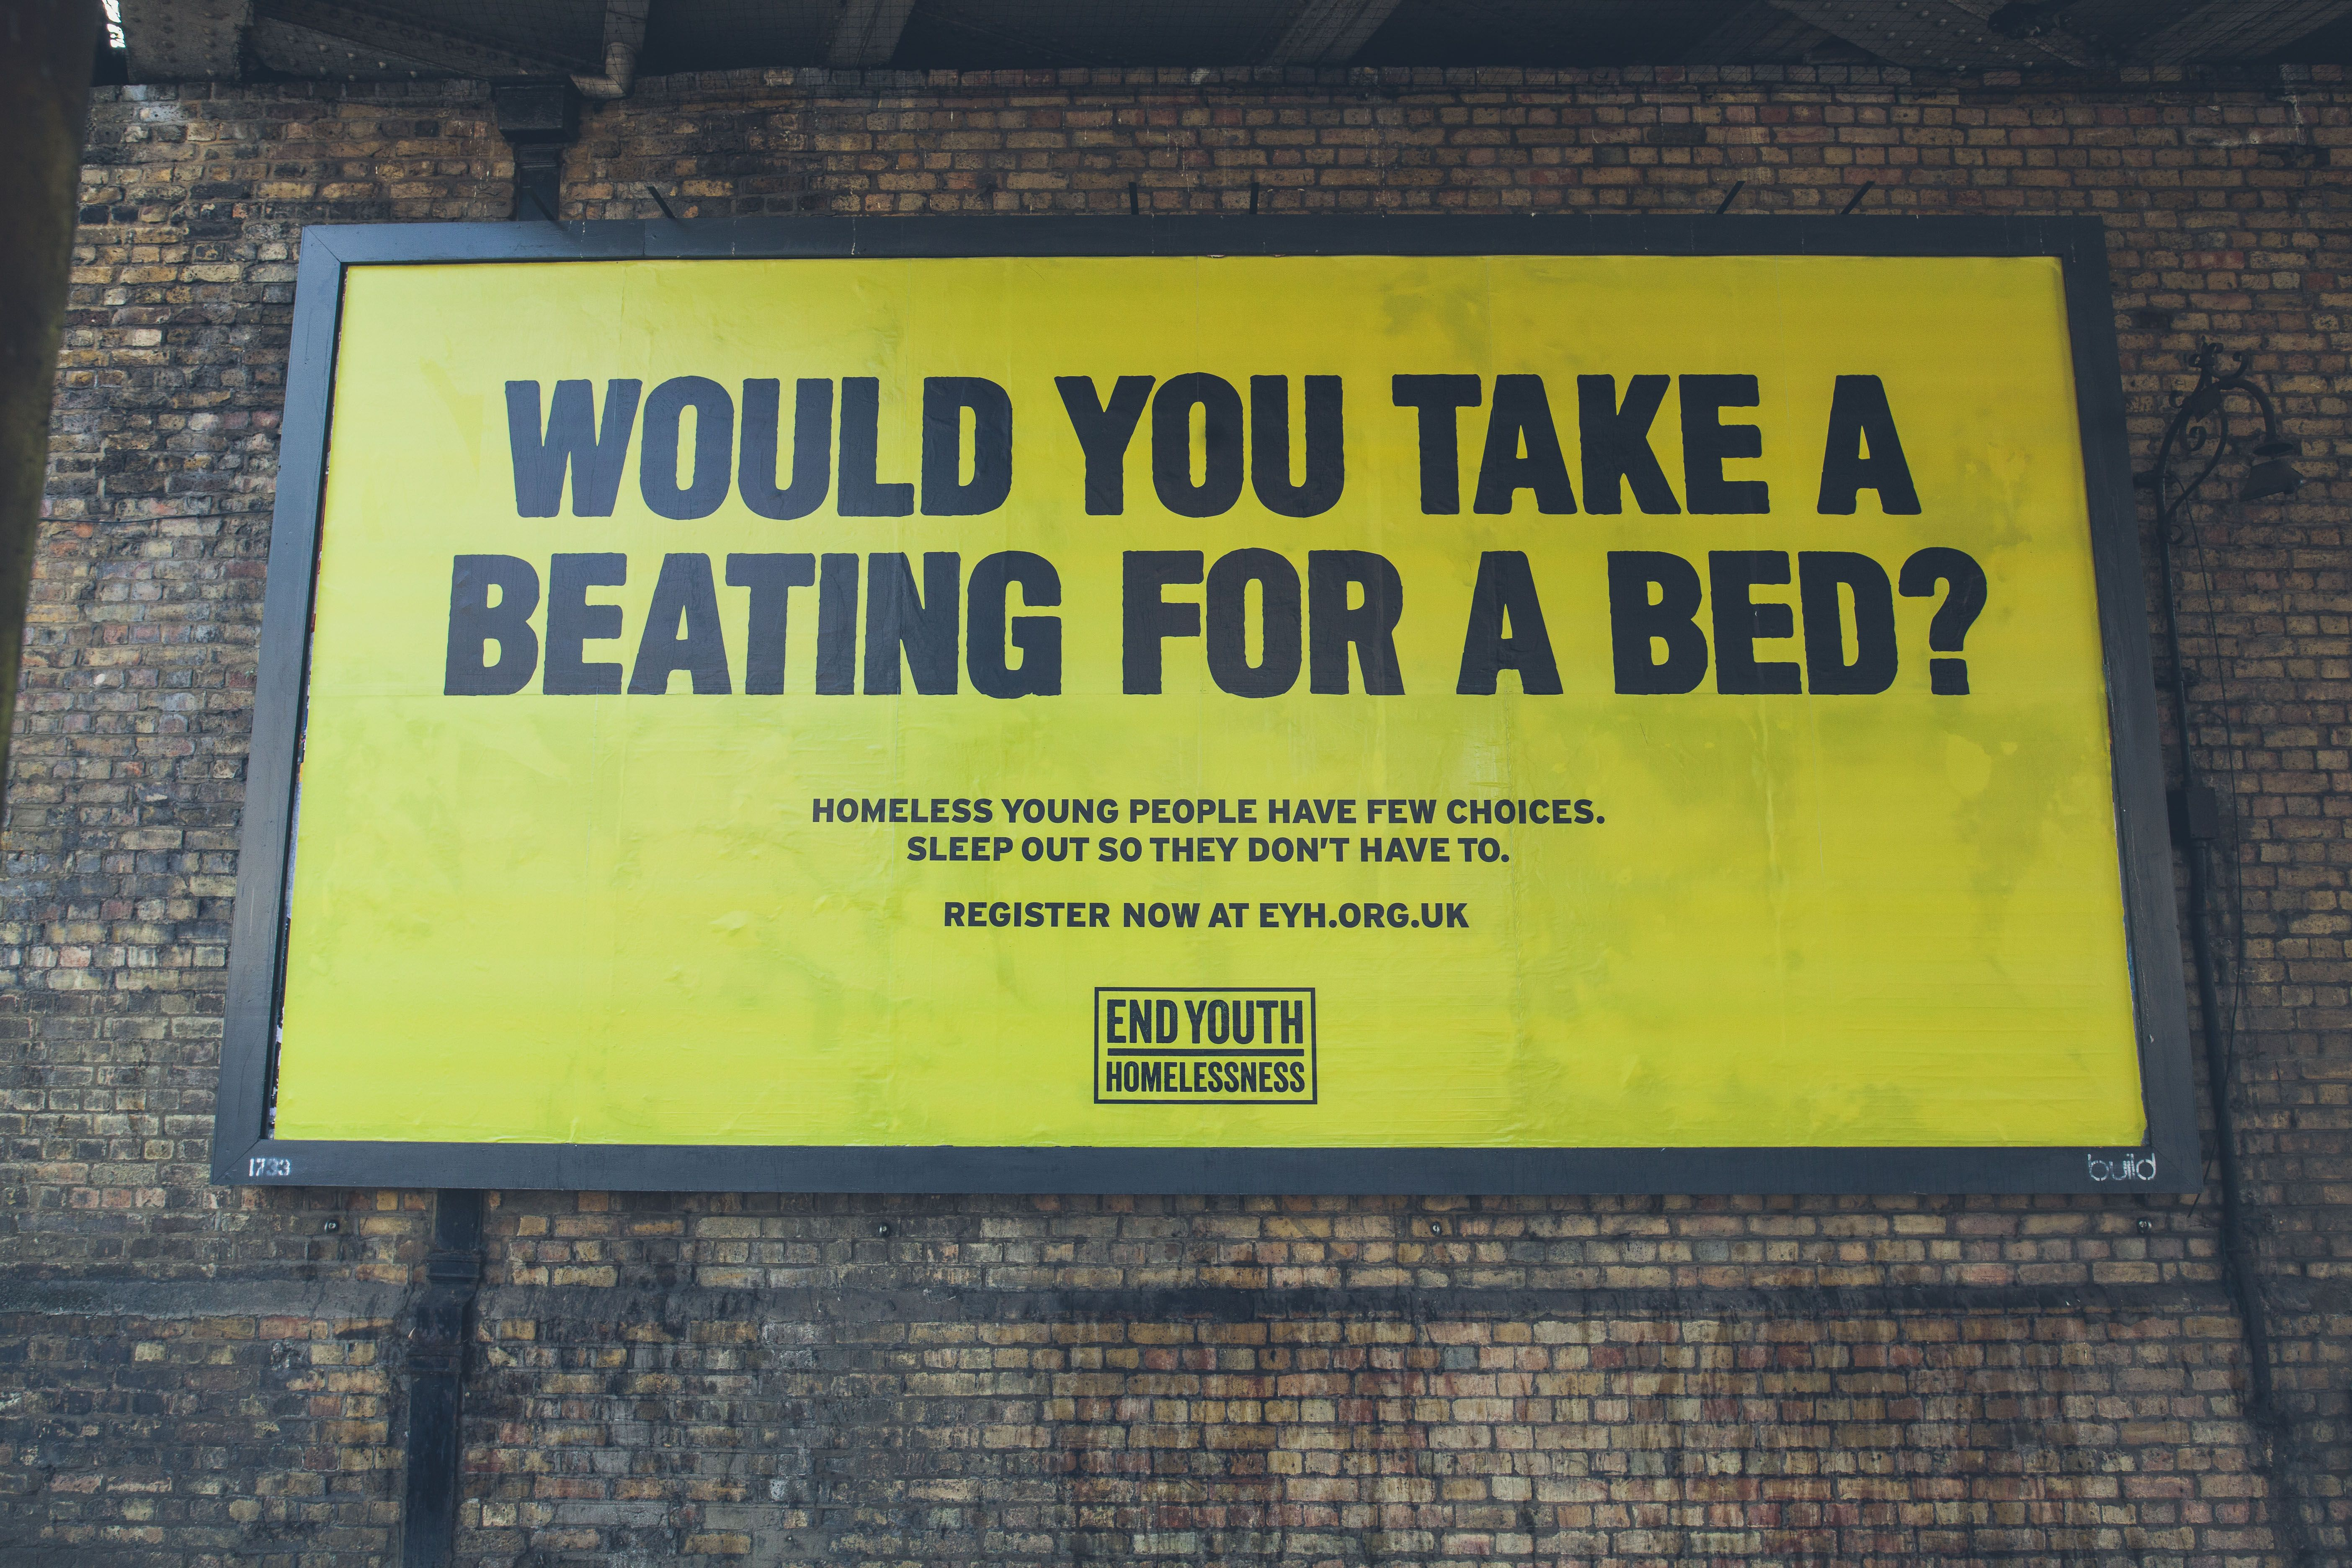 Swap Your Bed For A Sleeping Bag And Sleep Out Wcrs Best Ads Issues In Society Social Change